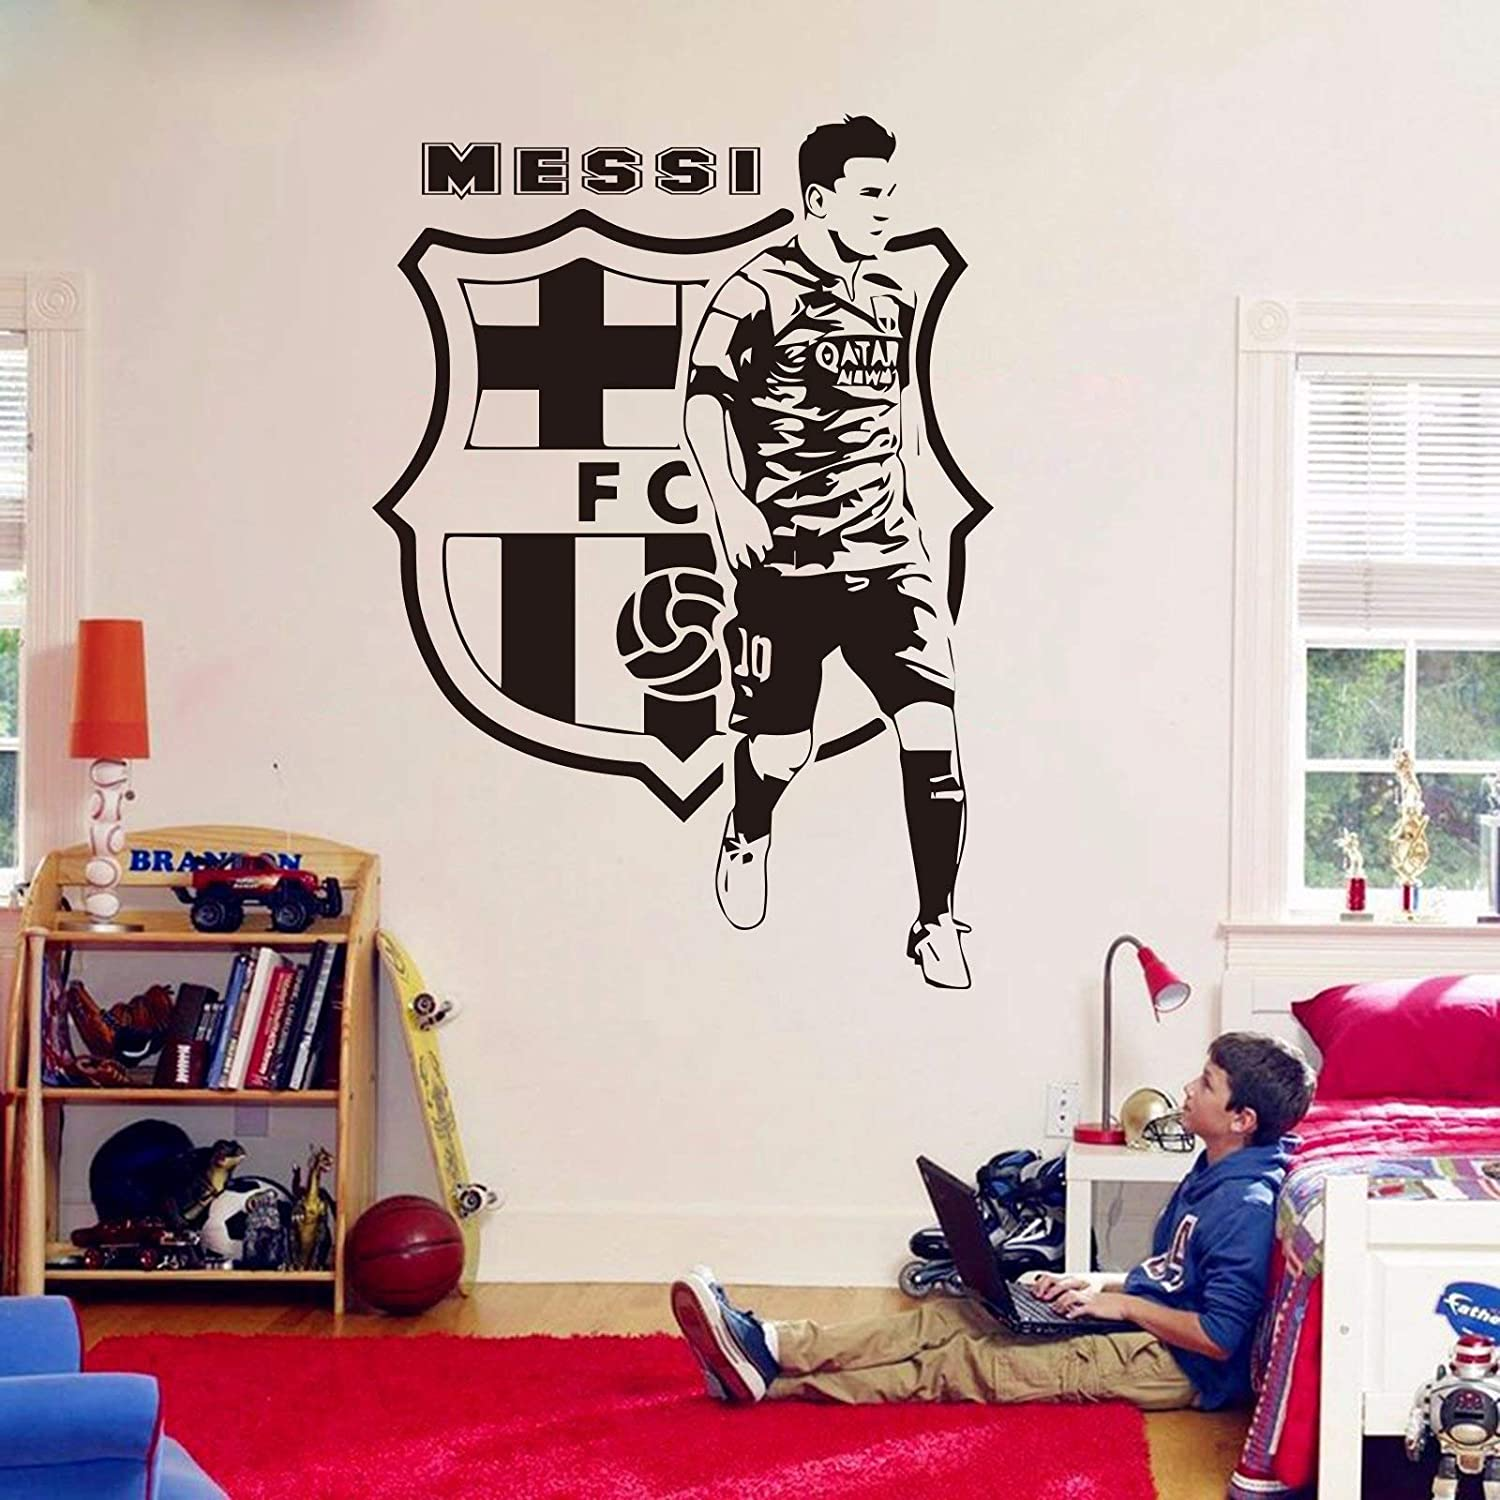 Andre Shop Lionel Messi Wall Decals - Barcelona Football Player Decals - Soccer Football Player Wall Sticker Vinyl Art - Boy Room Decor Custom Color